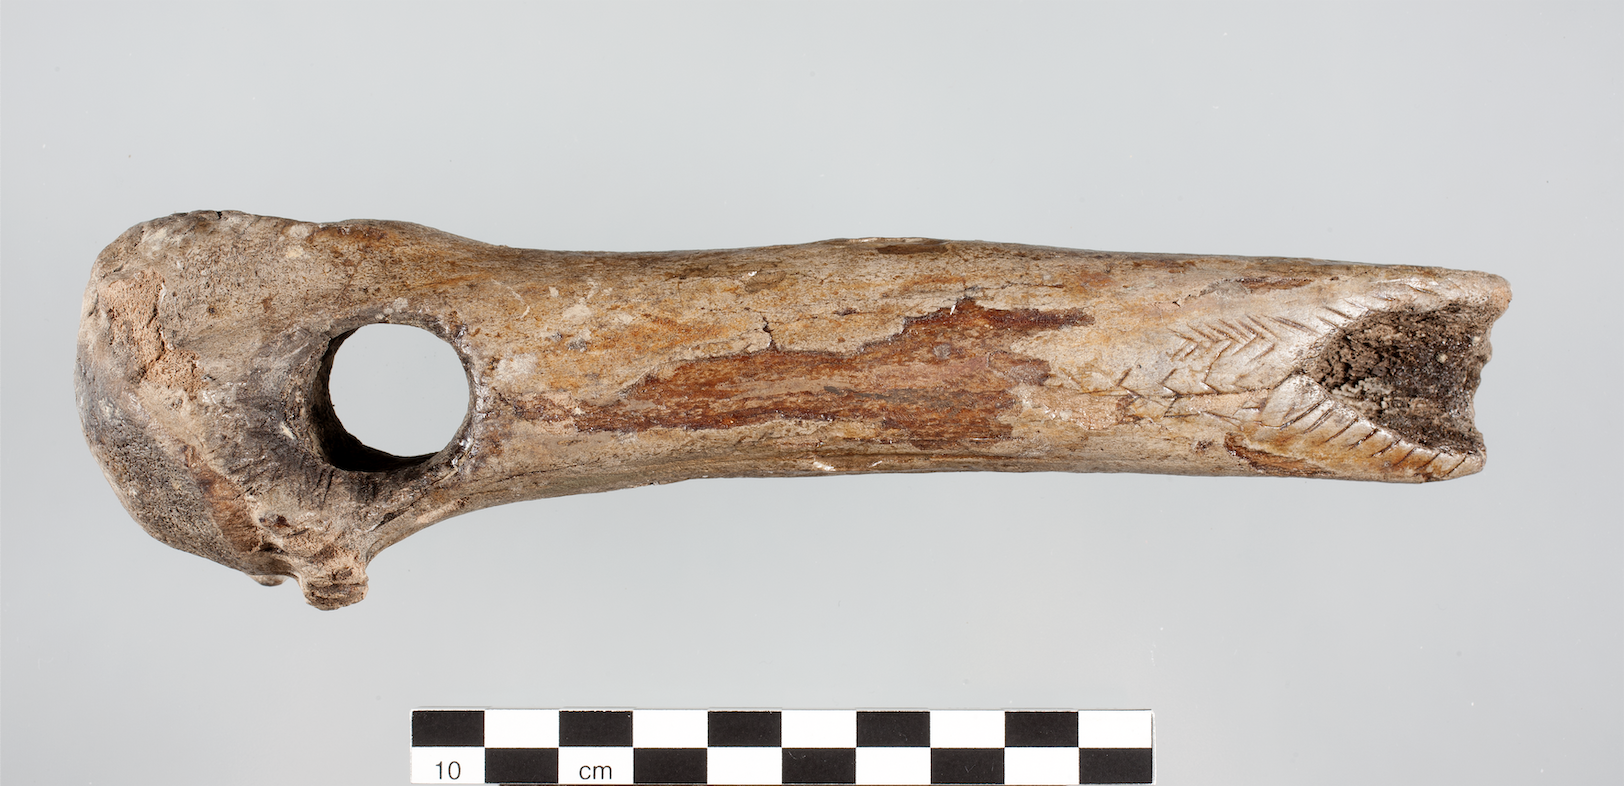 SFB1266 one of the dated Mesolithic antler axes from the site Travenhorst